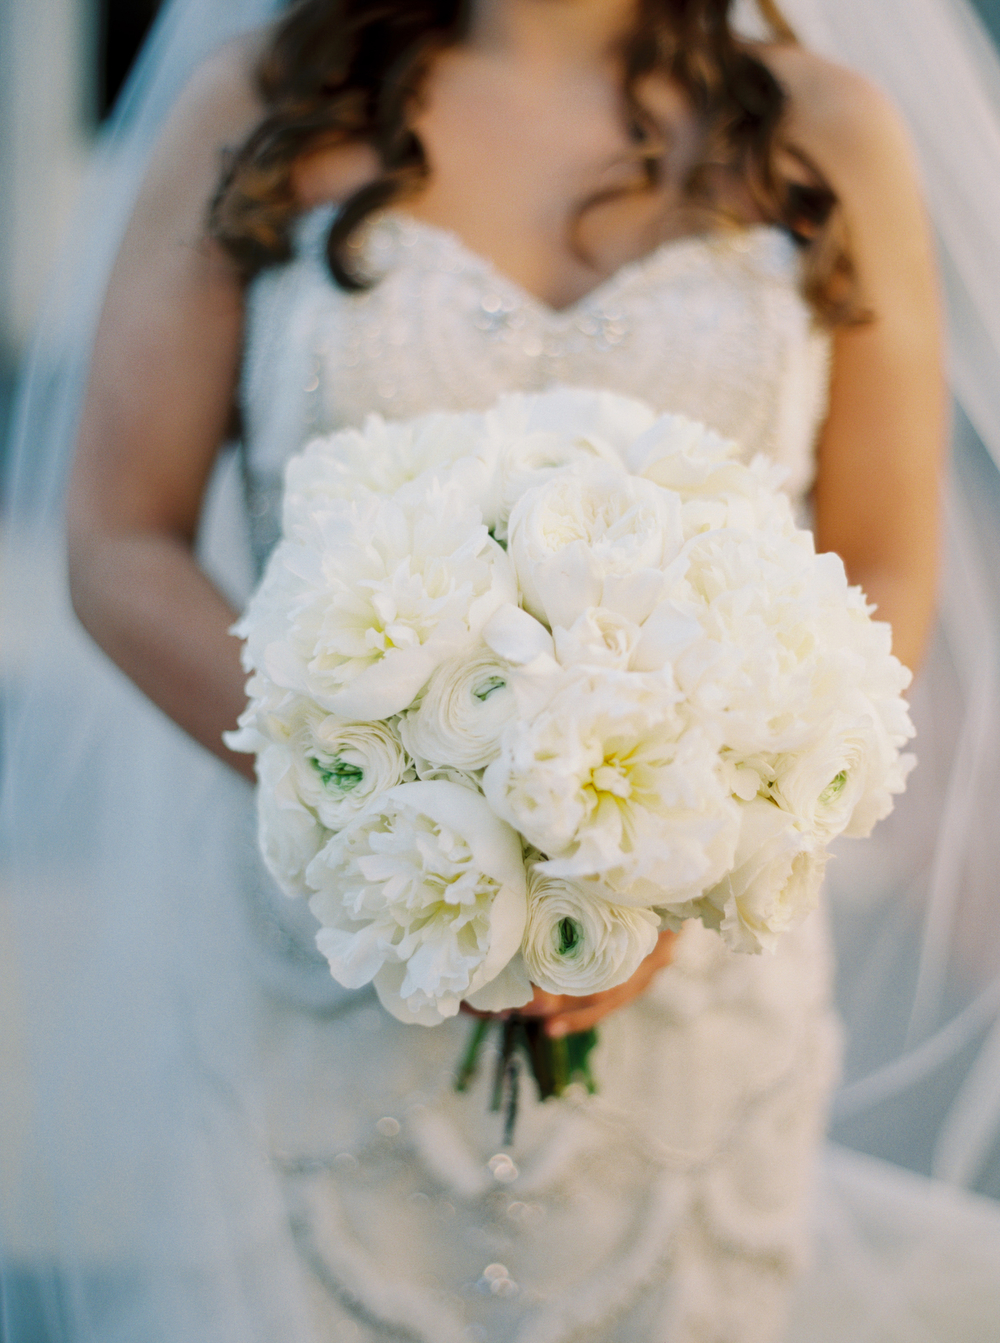 All white bouquet | How to transform an open ballroom with stunning decor | Sapphire Events | Greer G Photography | Board of Trade | White and Gold Wedding | Winter Wedding Inspiration | White and Green Wedding | Ballroom wedding